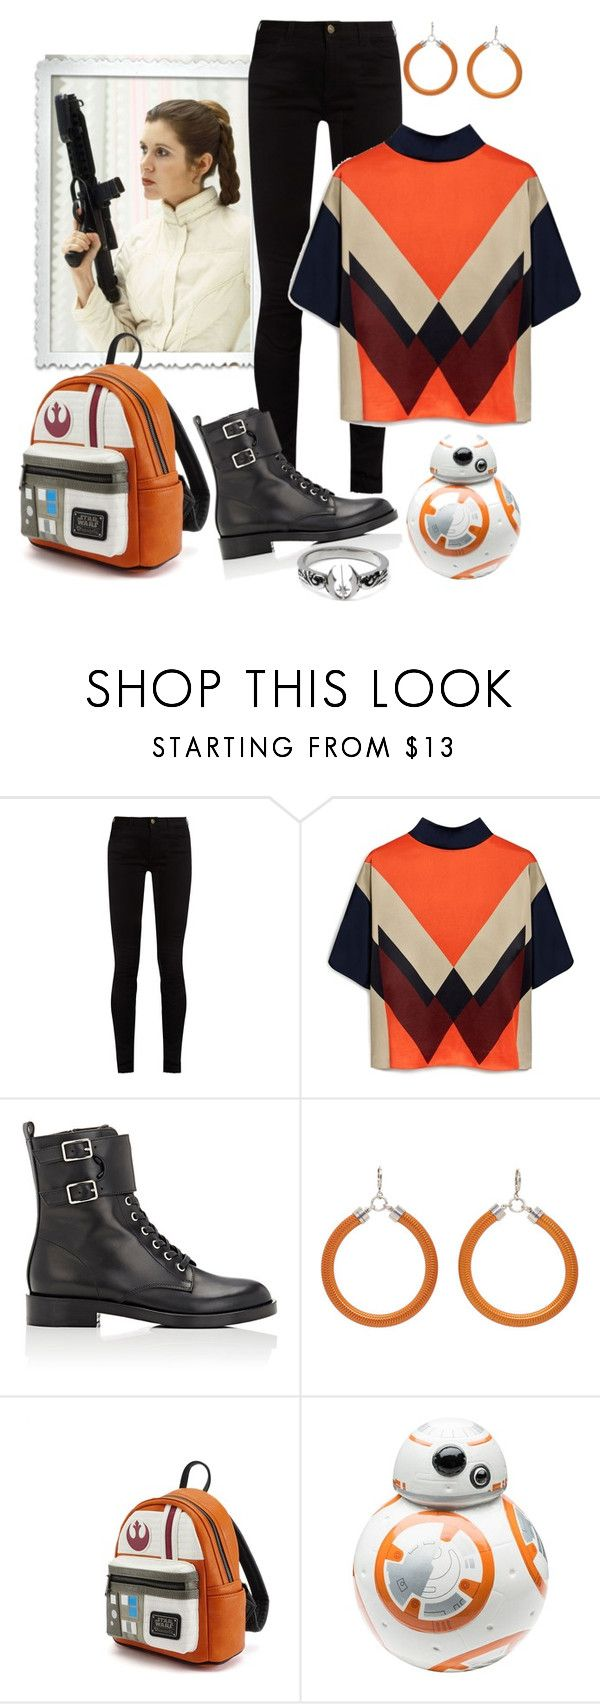 """""""The Princess in Orange"""" by ahapplet ❤ liked on Polyvore featuring Gucci, Mulberry, Gianvito Rossi, Isabel Marant, Loungefly, Zak! Designs, fictional and ahapplet"""